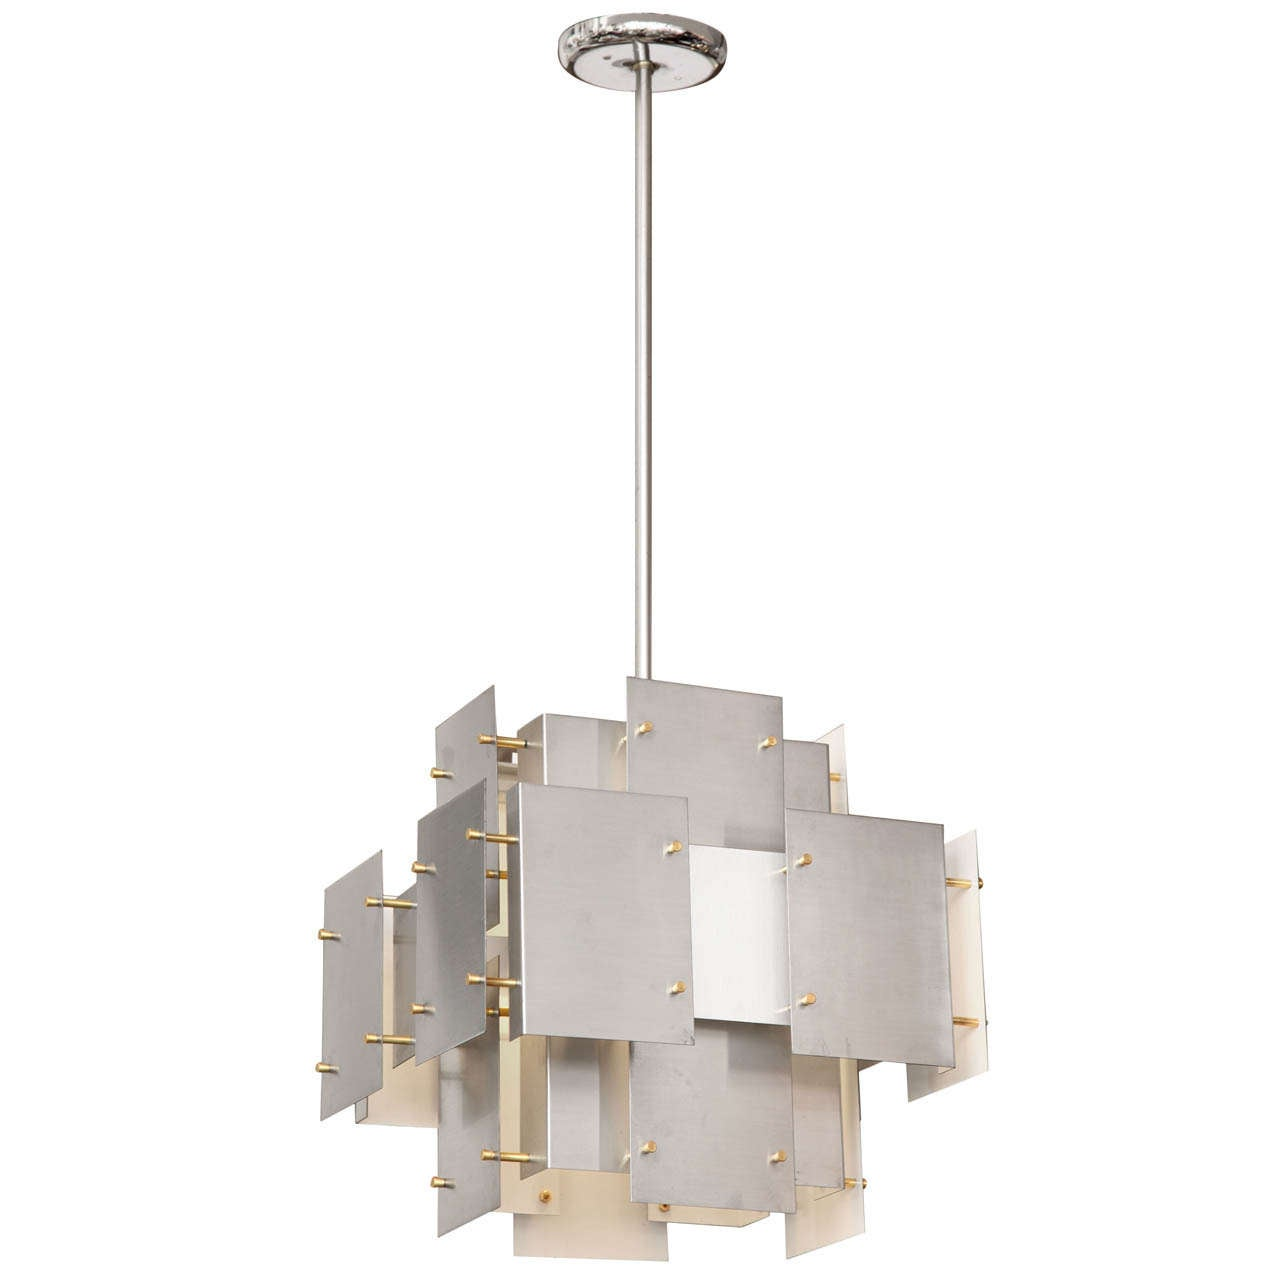 1960s Modernist Architectural Ceiling Fixture by Sonneman 1